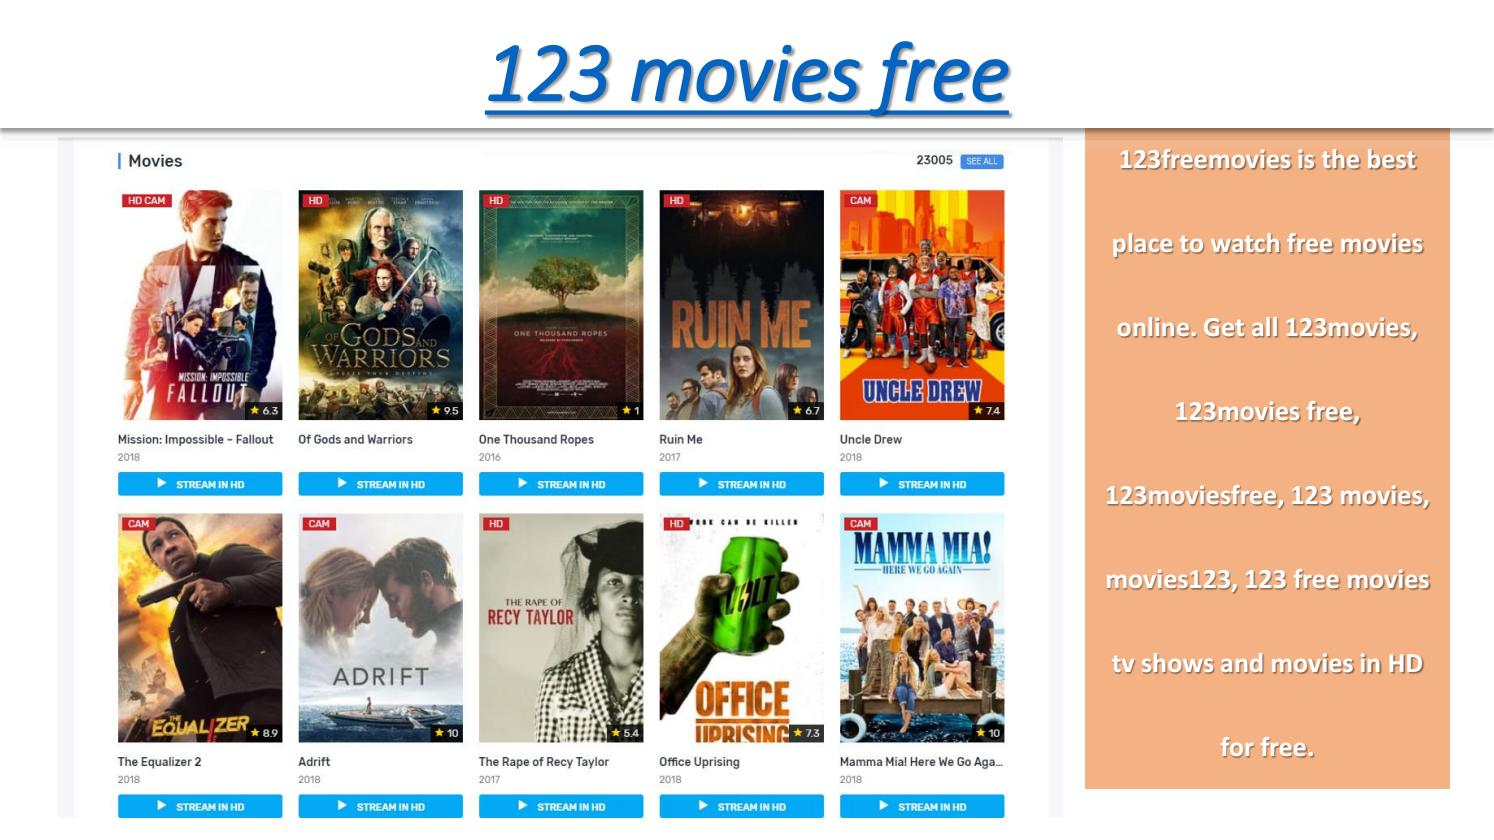 123Moviesfree